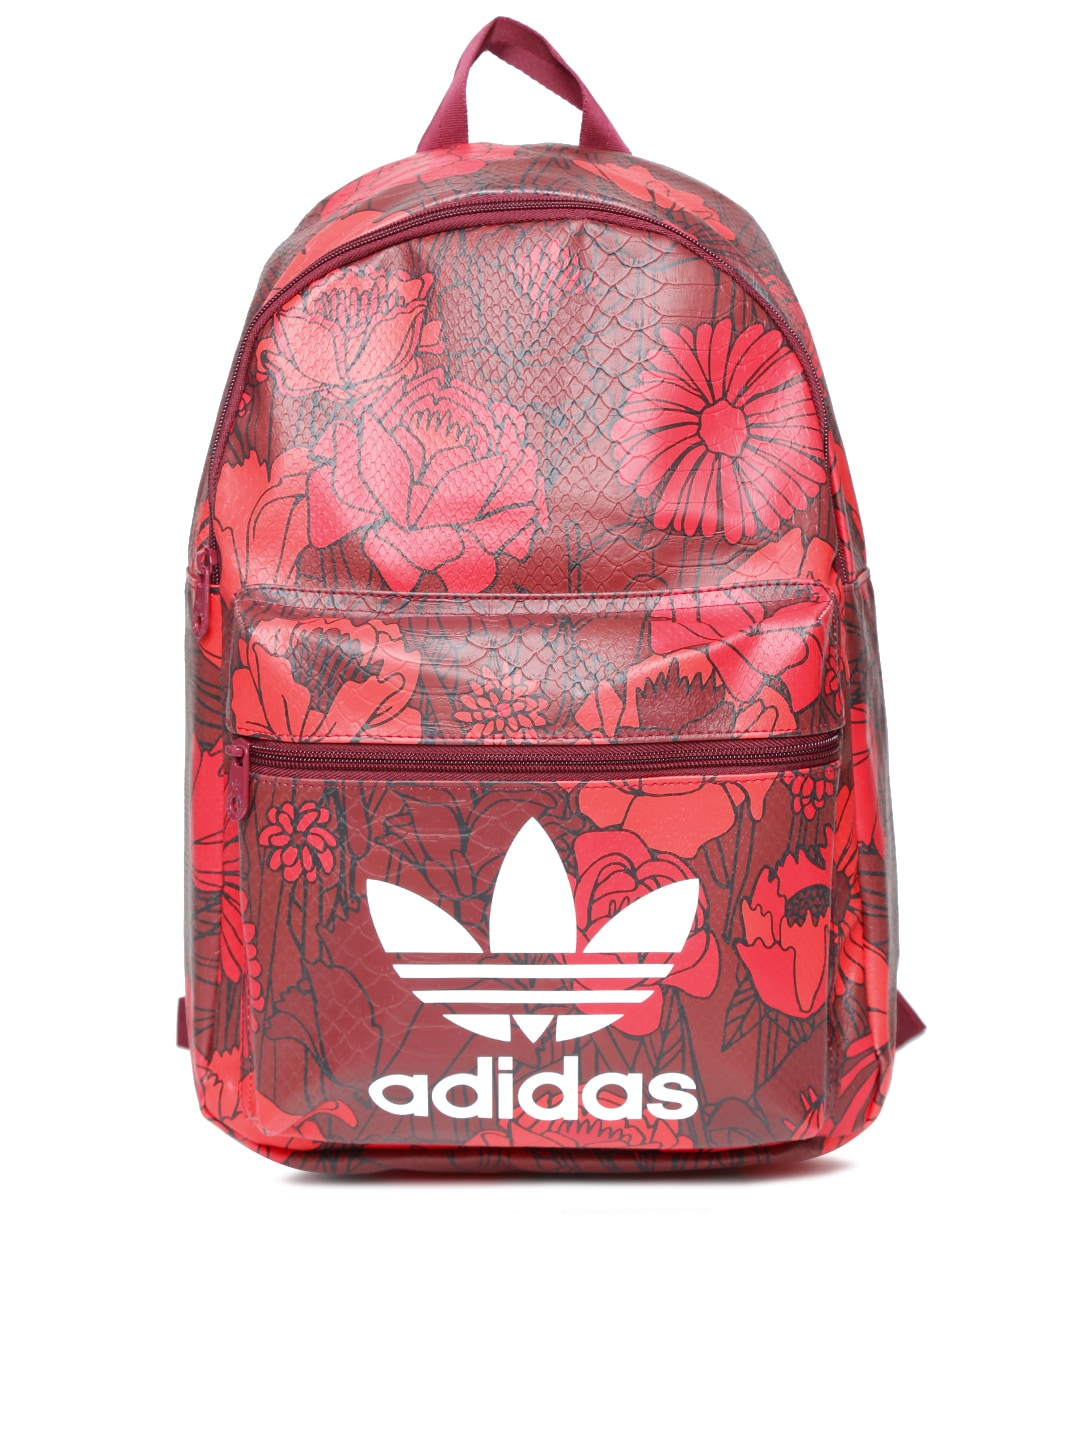 9b7c9027ebb4 Adidas originals ay5890 Women Maroon And Red Bp Classic Floral Print  Snakeskin Textured Backpack- Price in India